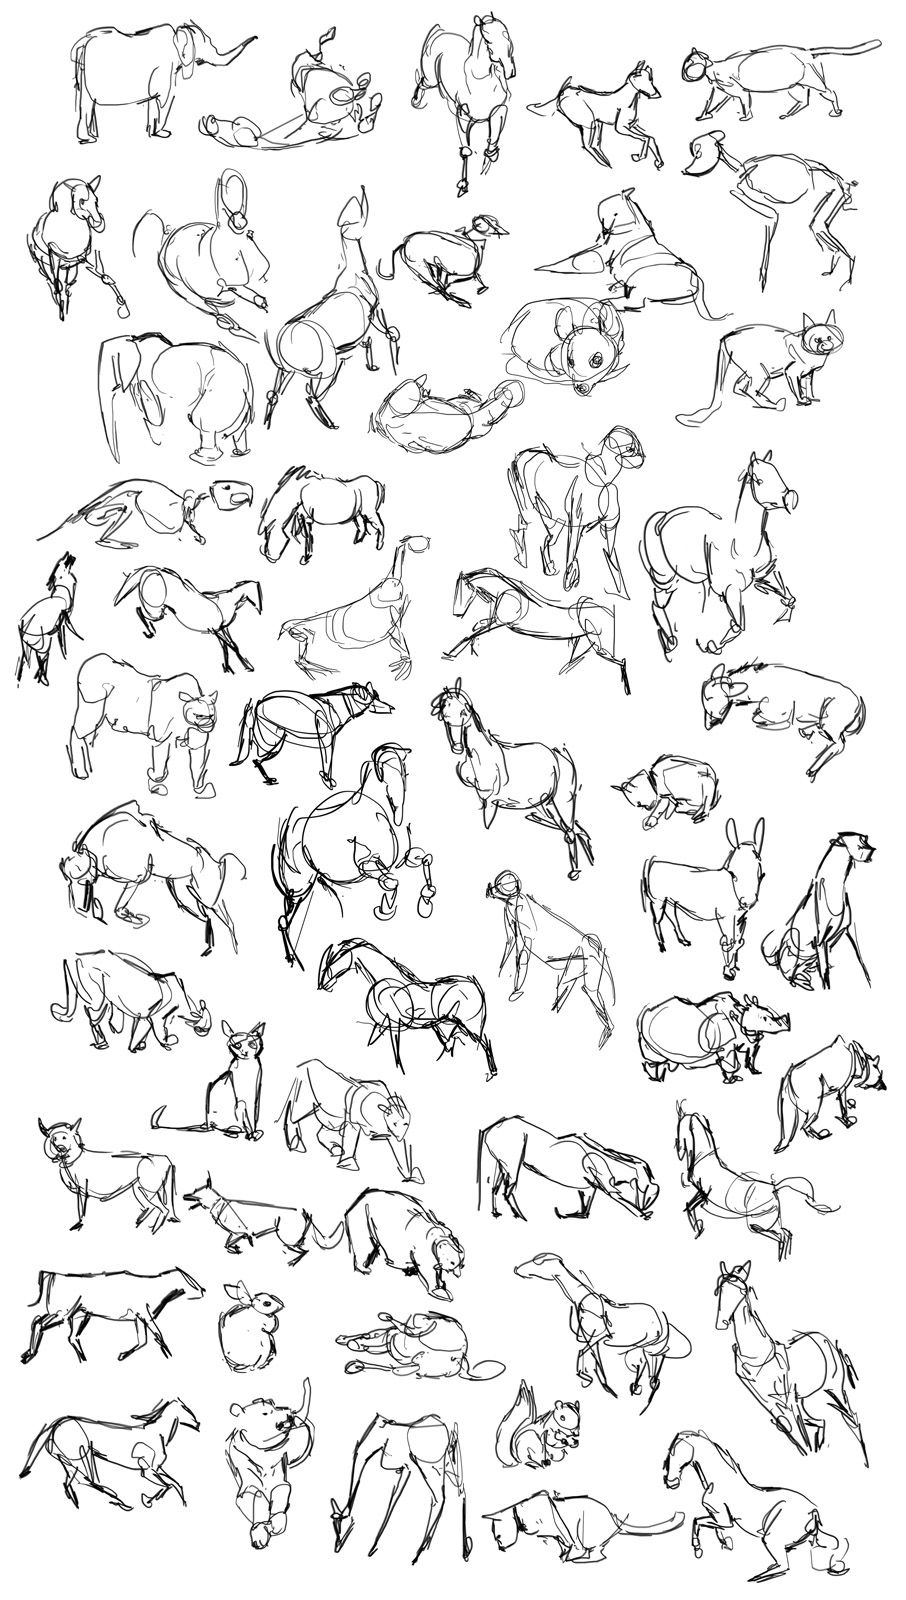 Animal gesture drawings || CHARACTER DESIGN REFERENCES | Art... <3 ...